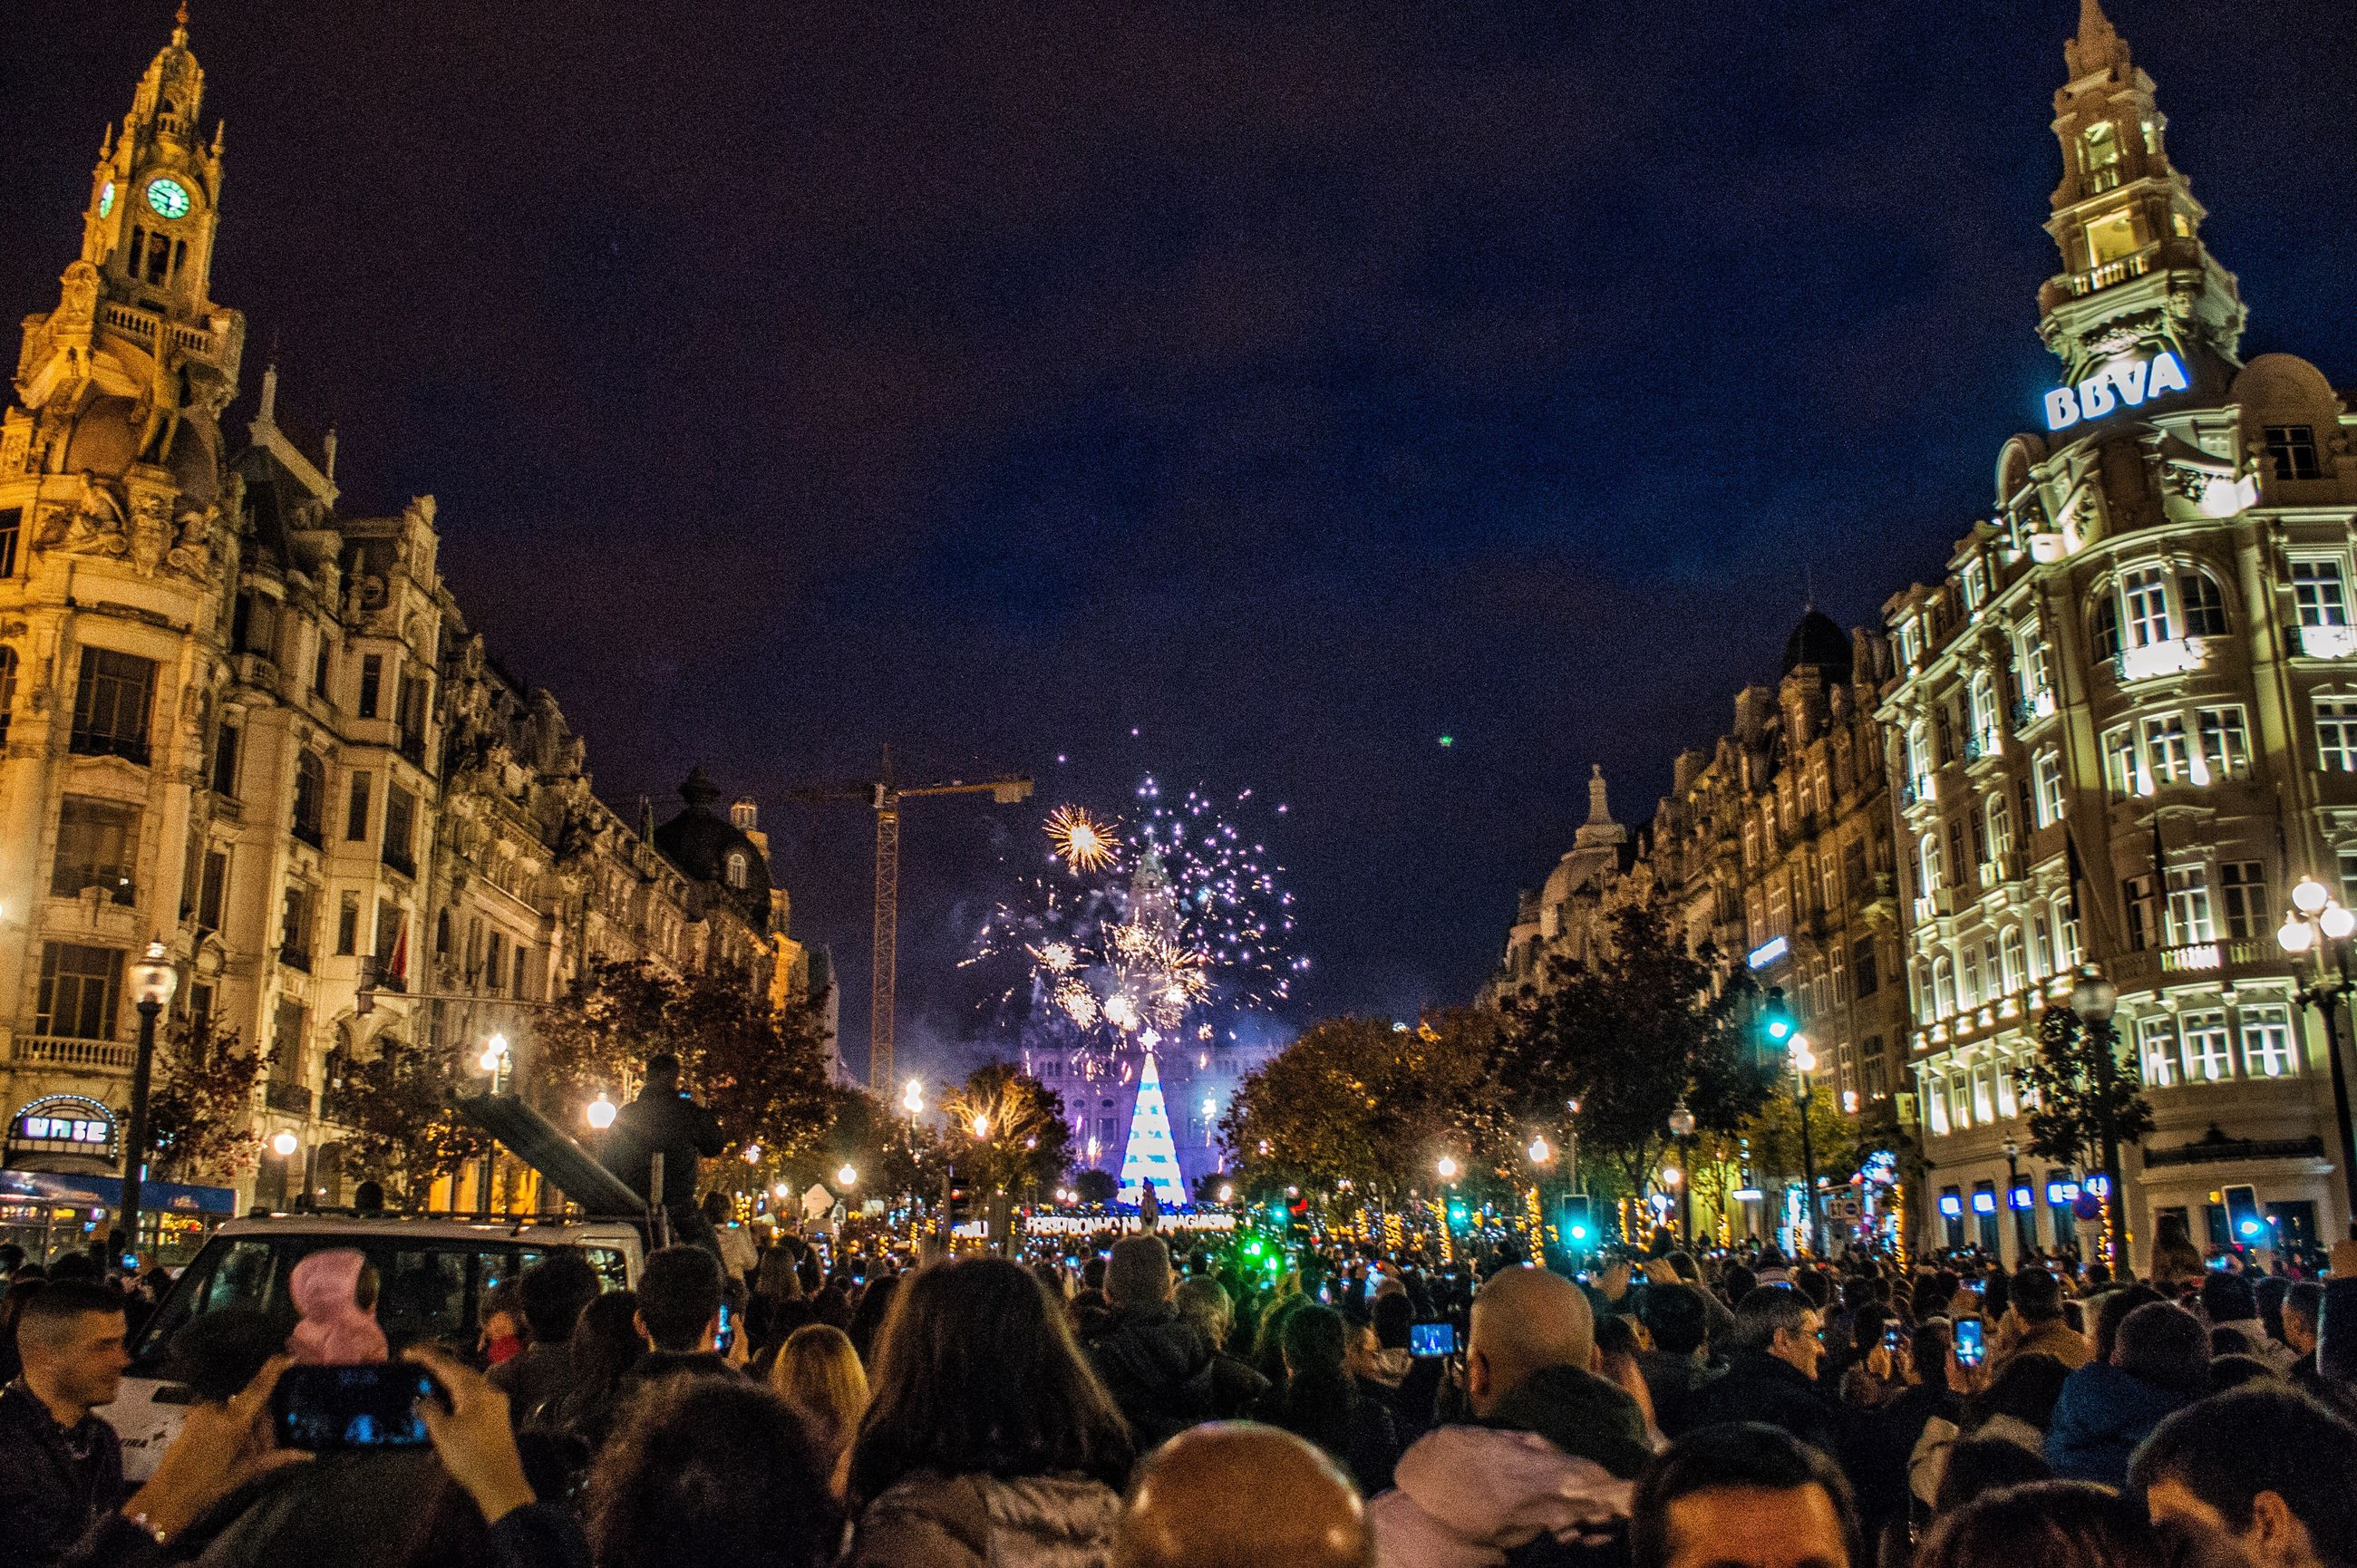 illuminated, night, large group of people, architecture, building exterior, travel destinations, christmas lights, city, christmas, christmas decoration, outdoors, sky, religion, built structure, christmas tree, christmas market, crowd, people